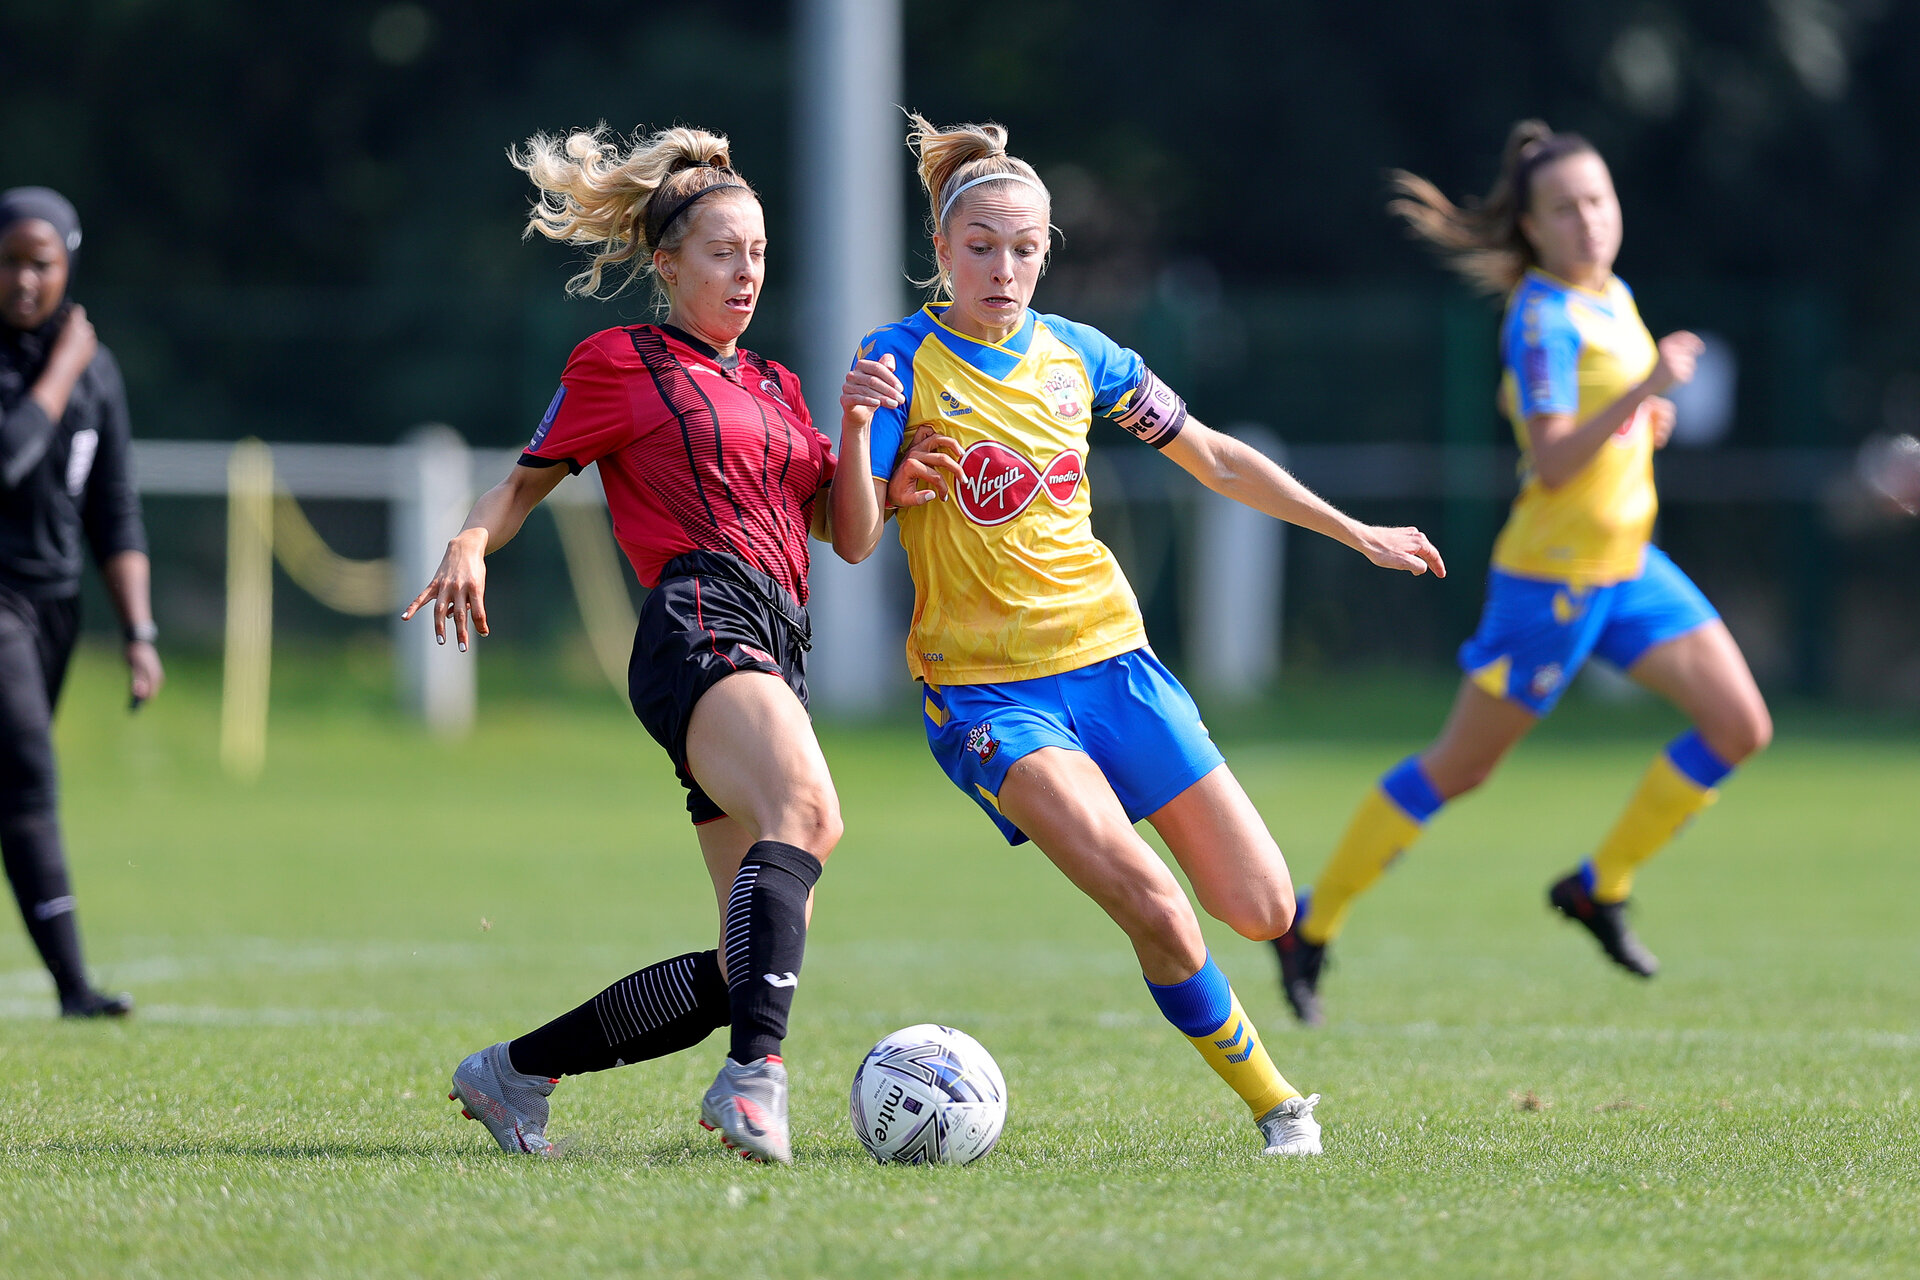 MIDDLESEX, ENGLAND - SEPTEMBER 05:  during the Women's National League Southern Premier match between Hounslow and Southampton Women at Rectory Meadow on September 05, 2021 in Middlesex, England. (Photo by Isabelle Field/Southampton FC via Getty Images)